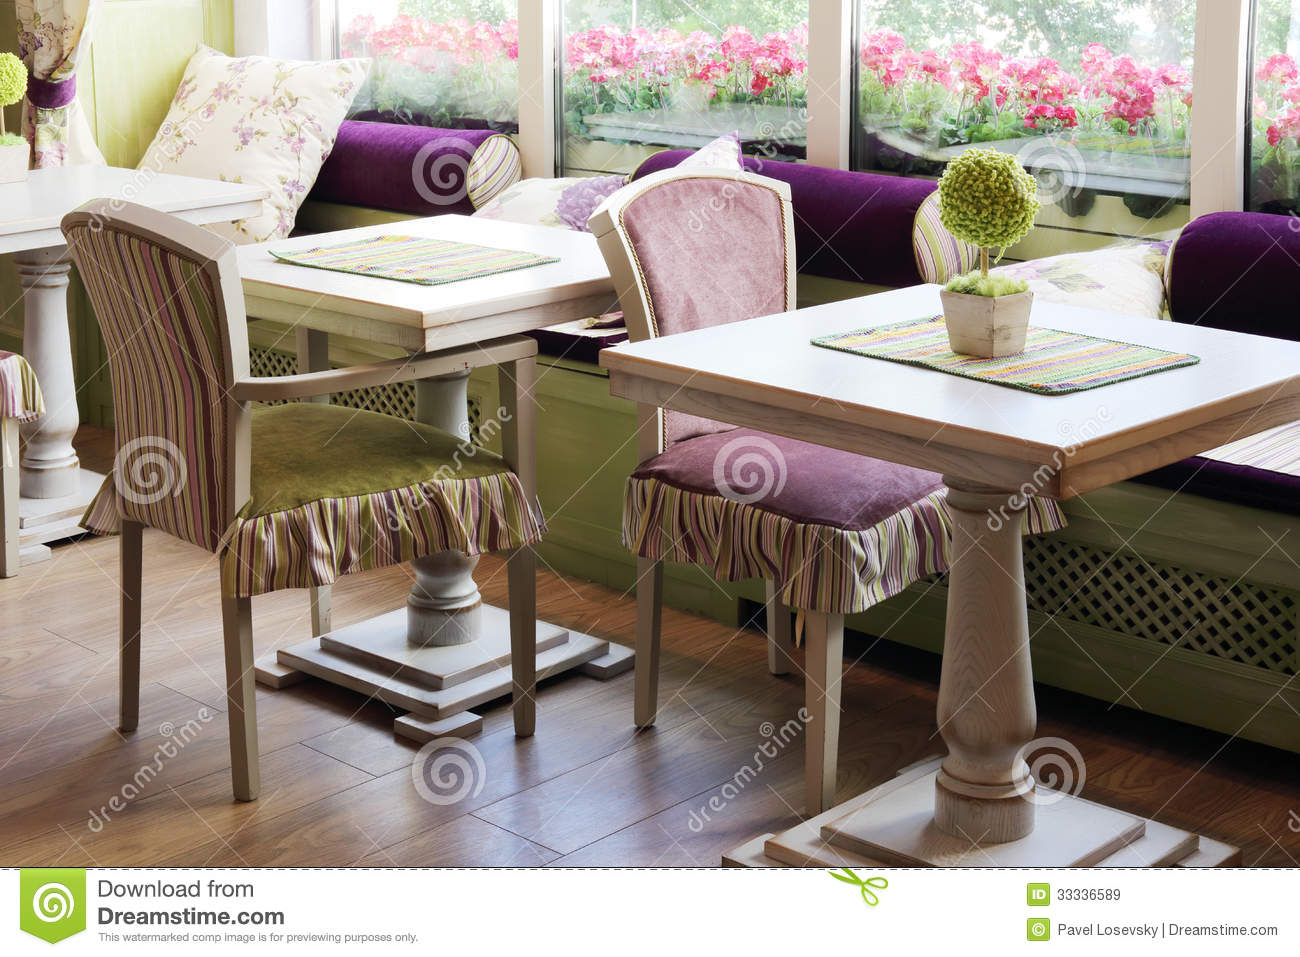 Tables near windows in cafe anderson editorial stock image for Table moscow